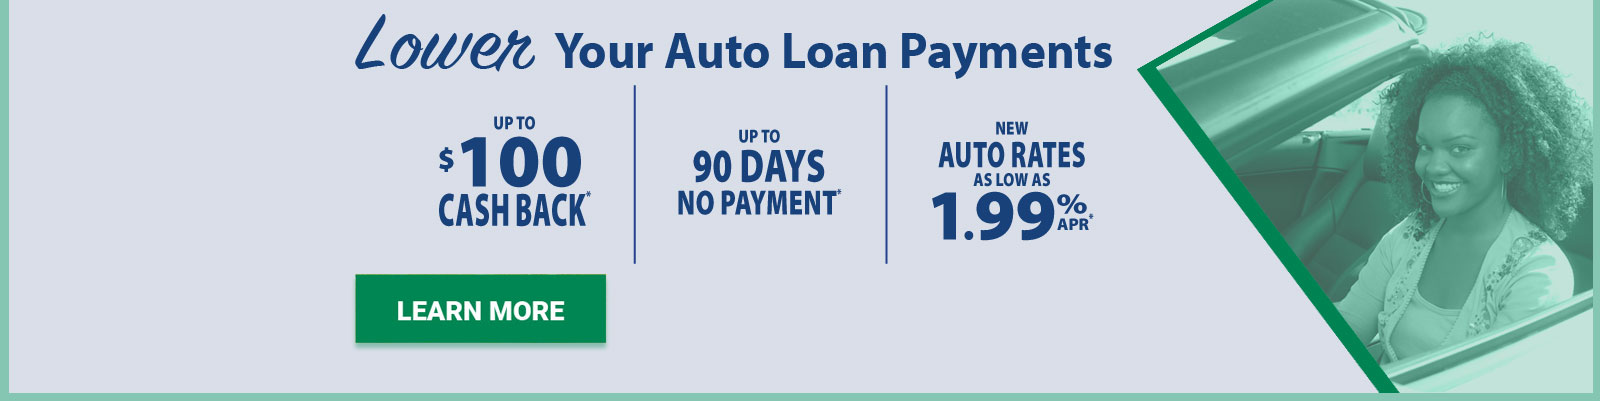 Auto Loan 90 days no pay banner